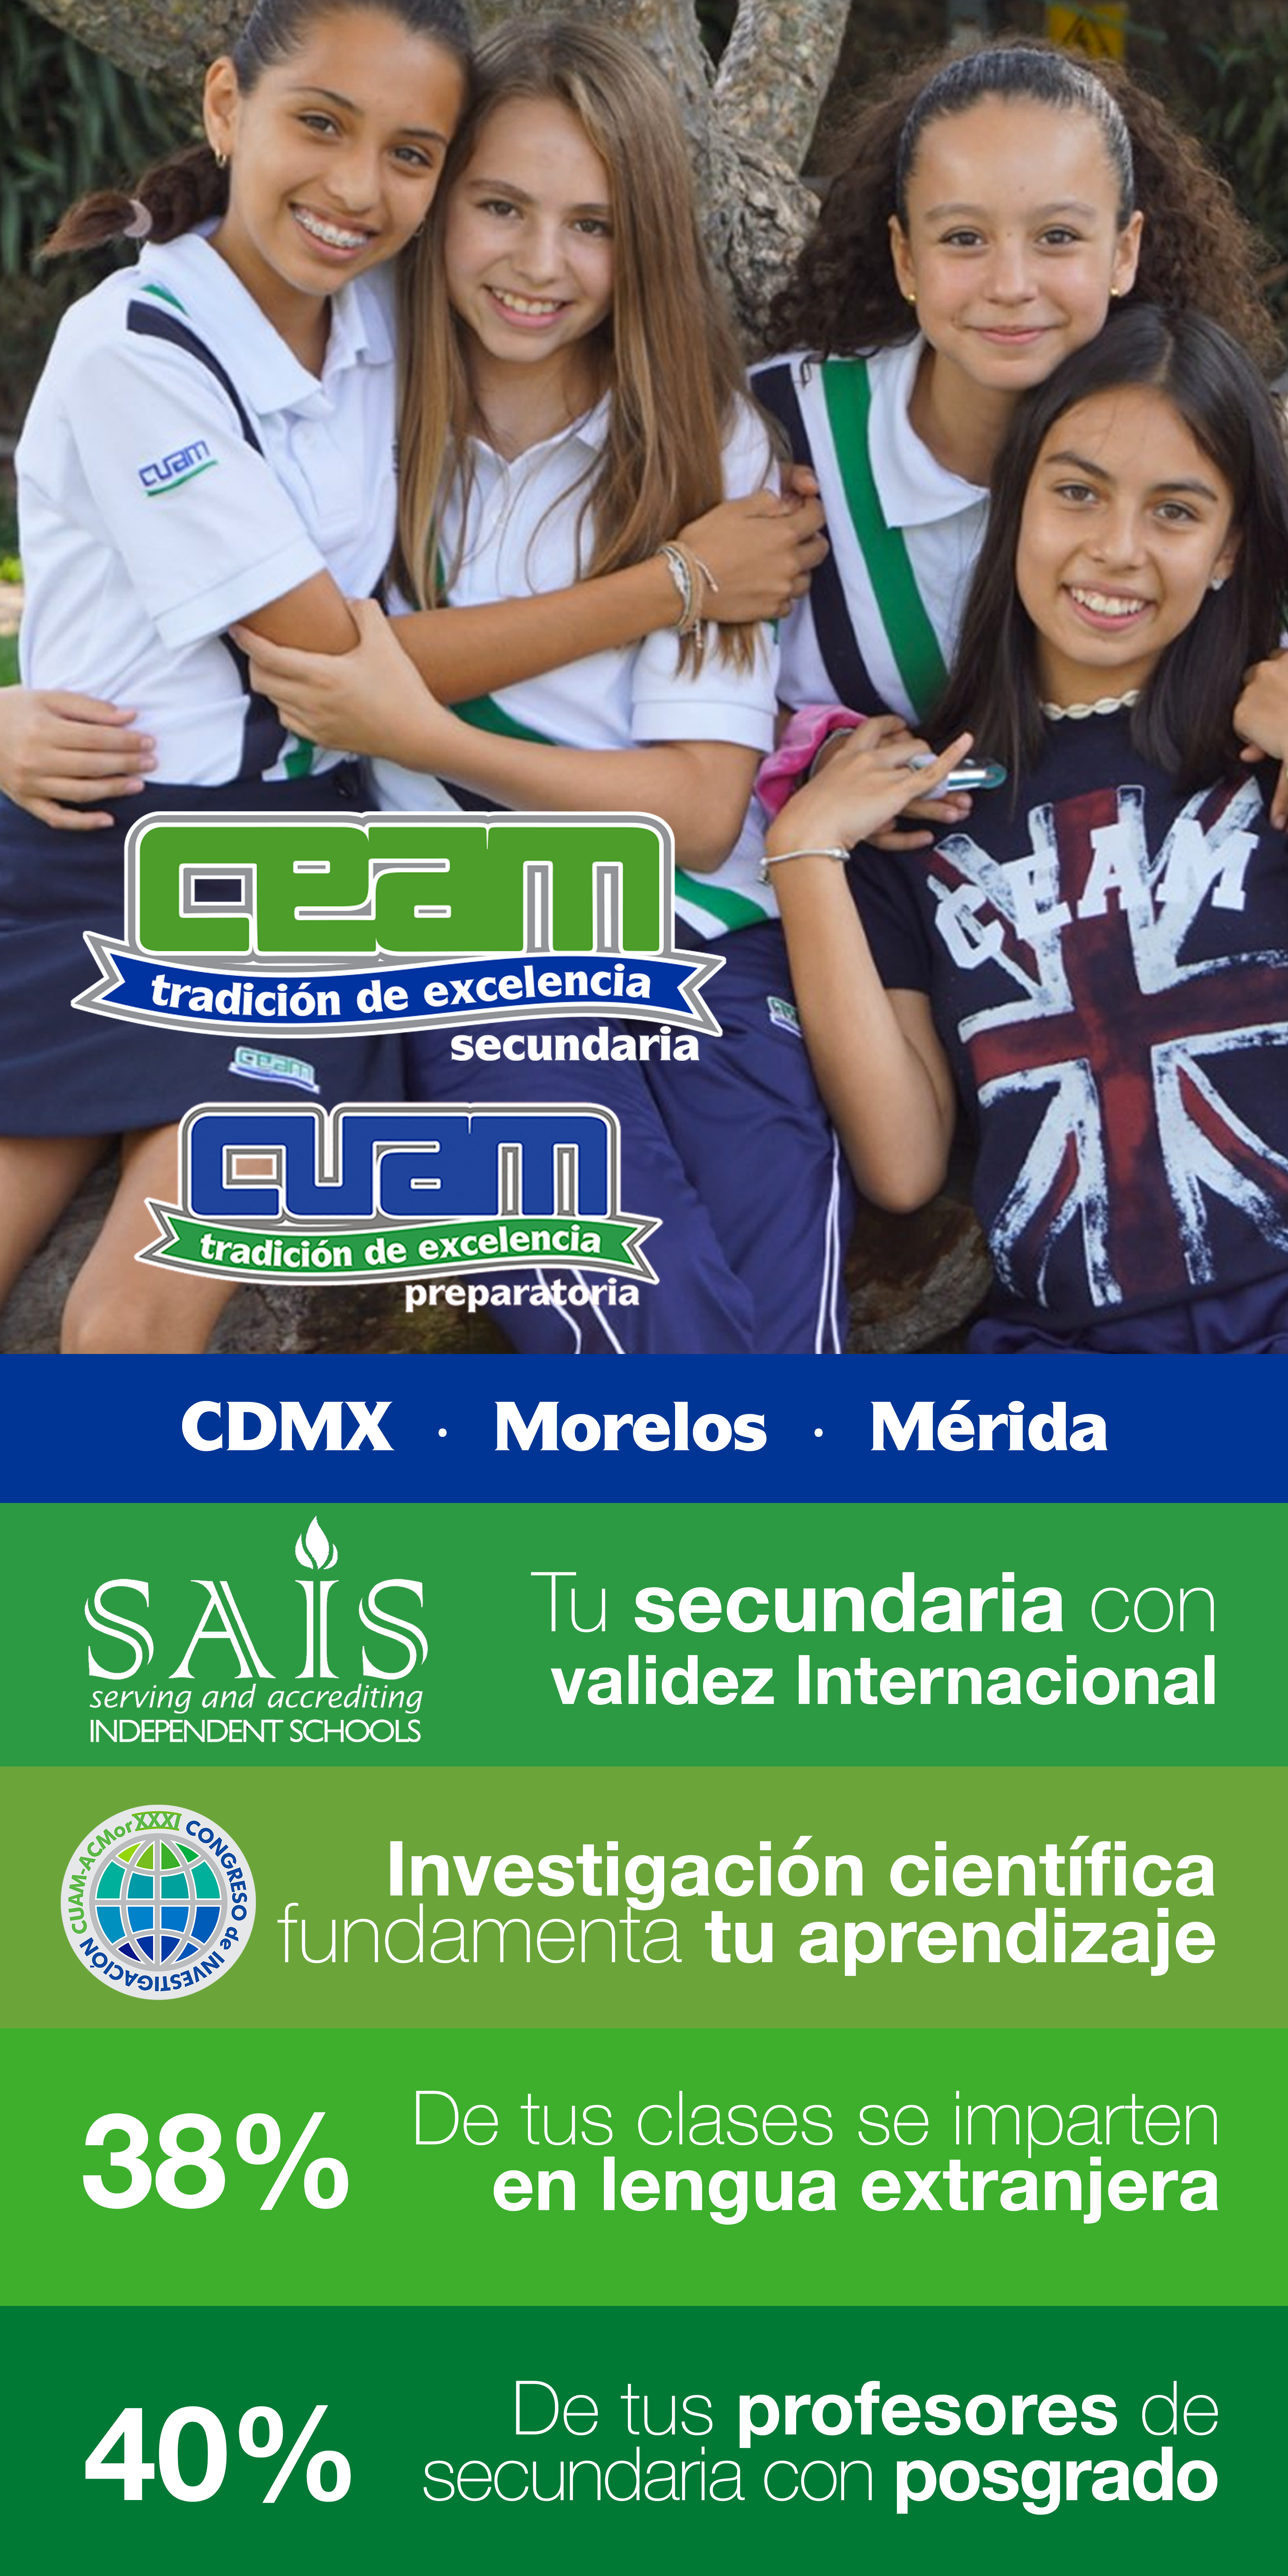 Secundaria Global CEAM